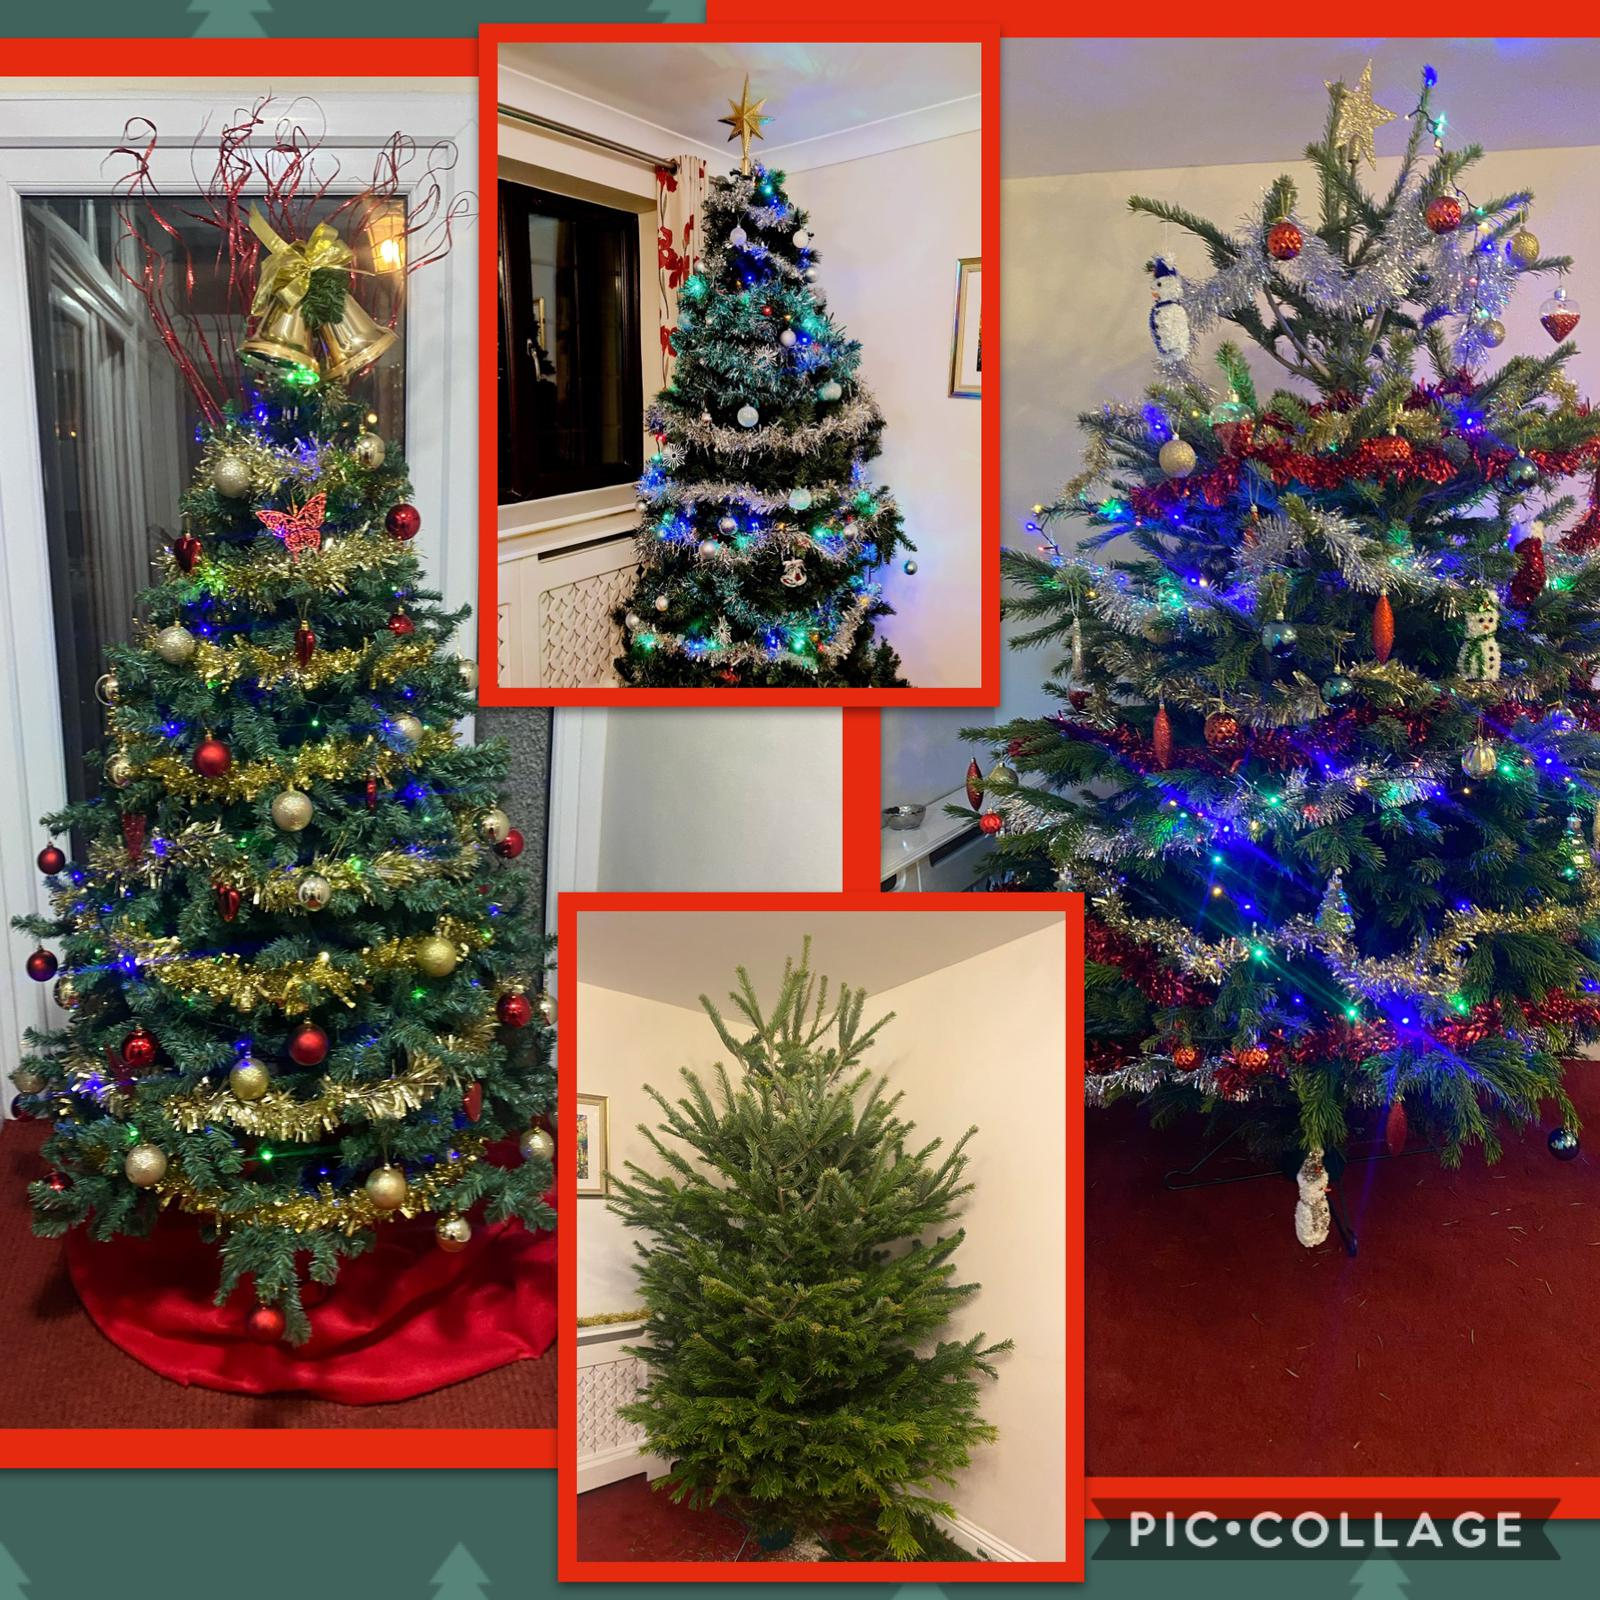 Christmas trees at Tilford Care and Nursing Home in Farnham